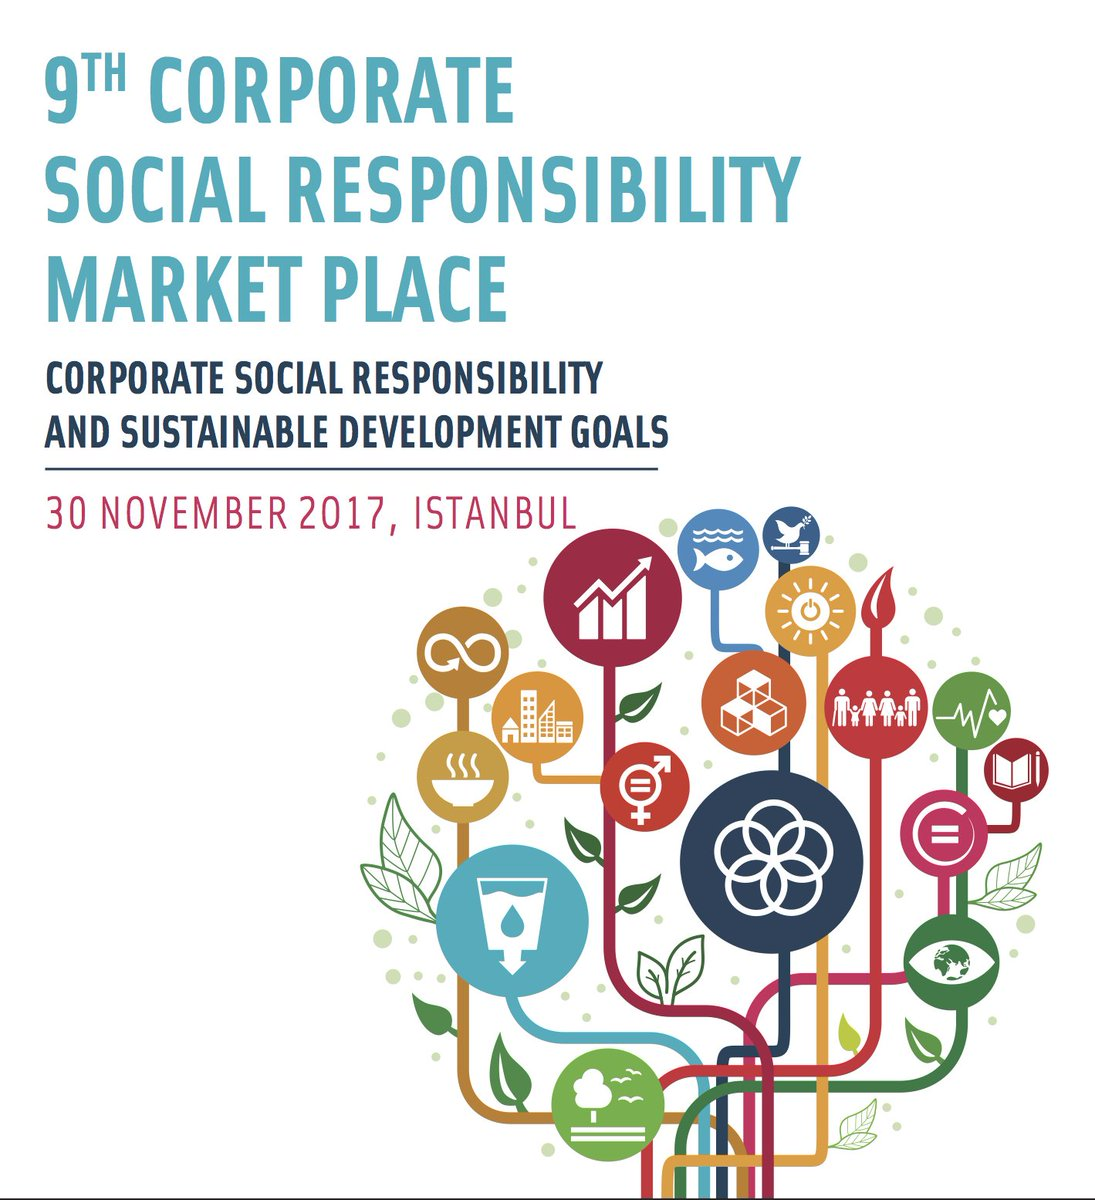 social responsibility and market failure Society's demands for individual and corporate social responsibility as an alternative response to market and distributive failures social responsibility.